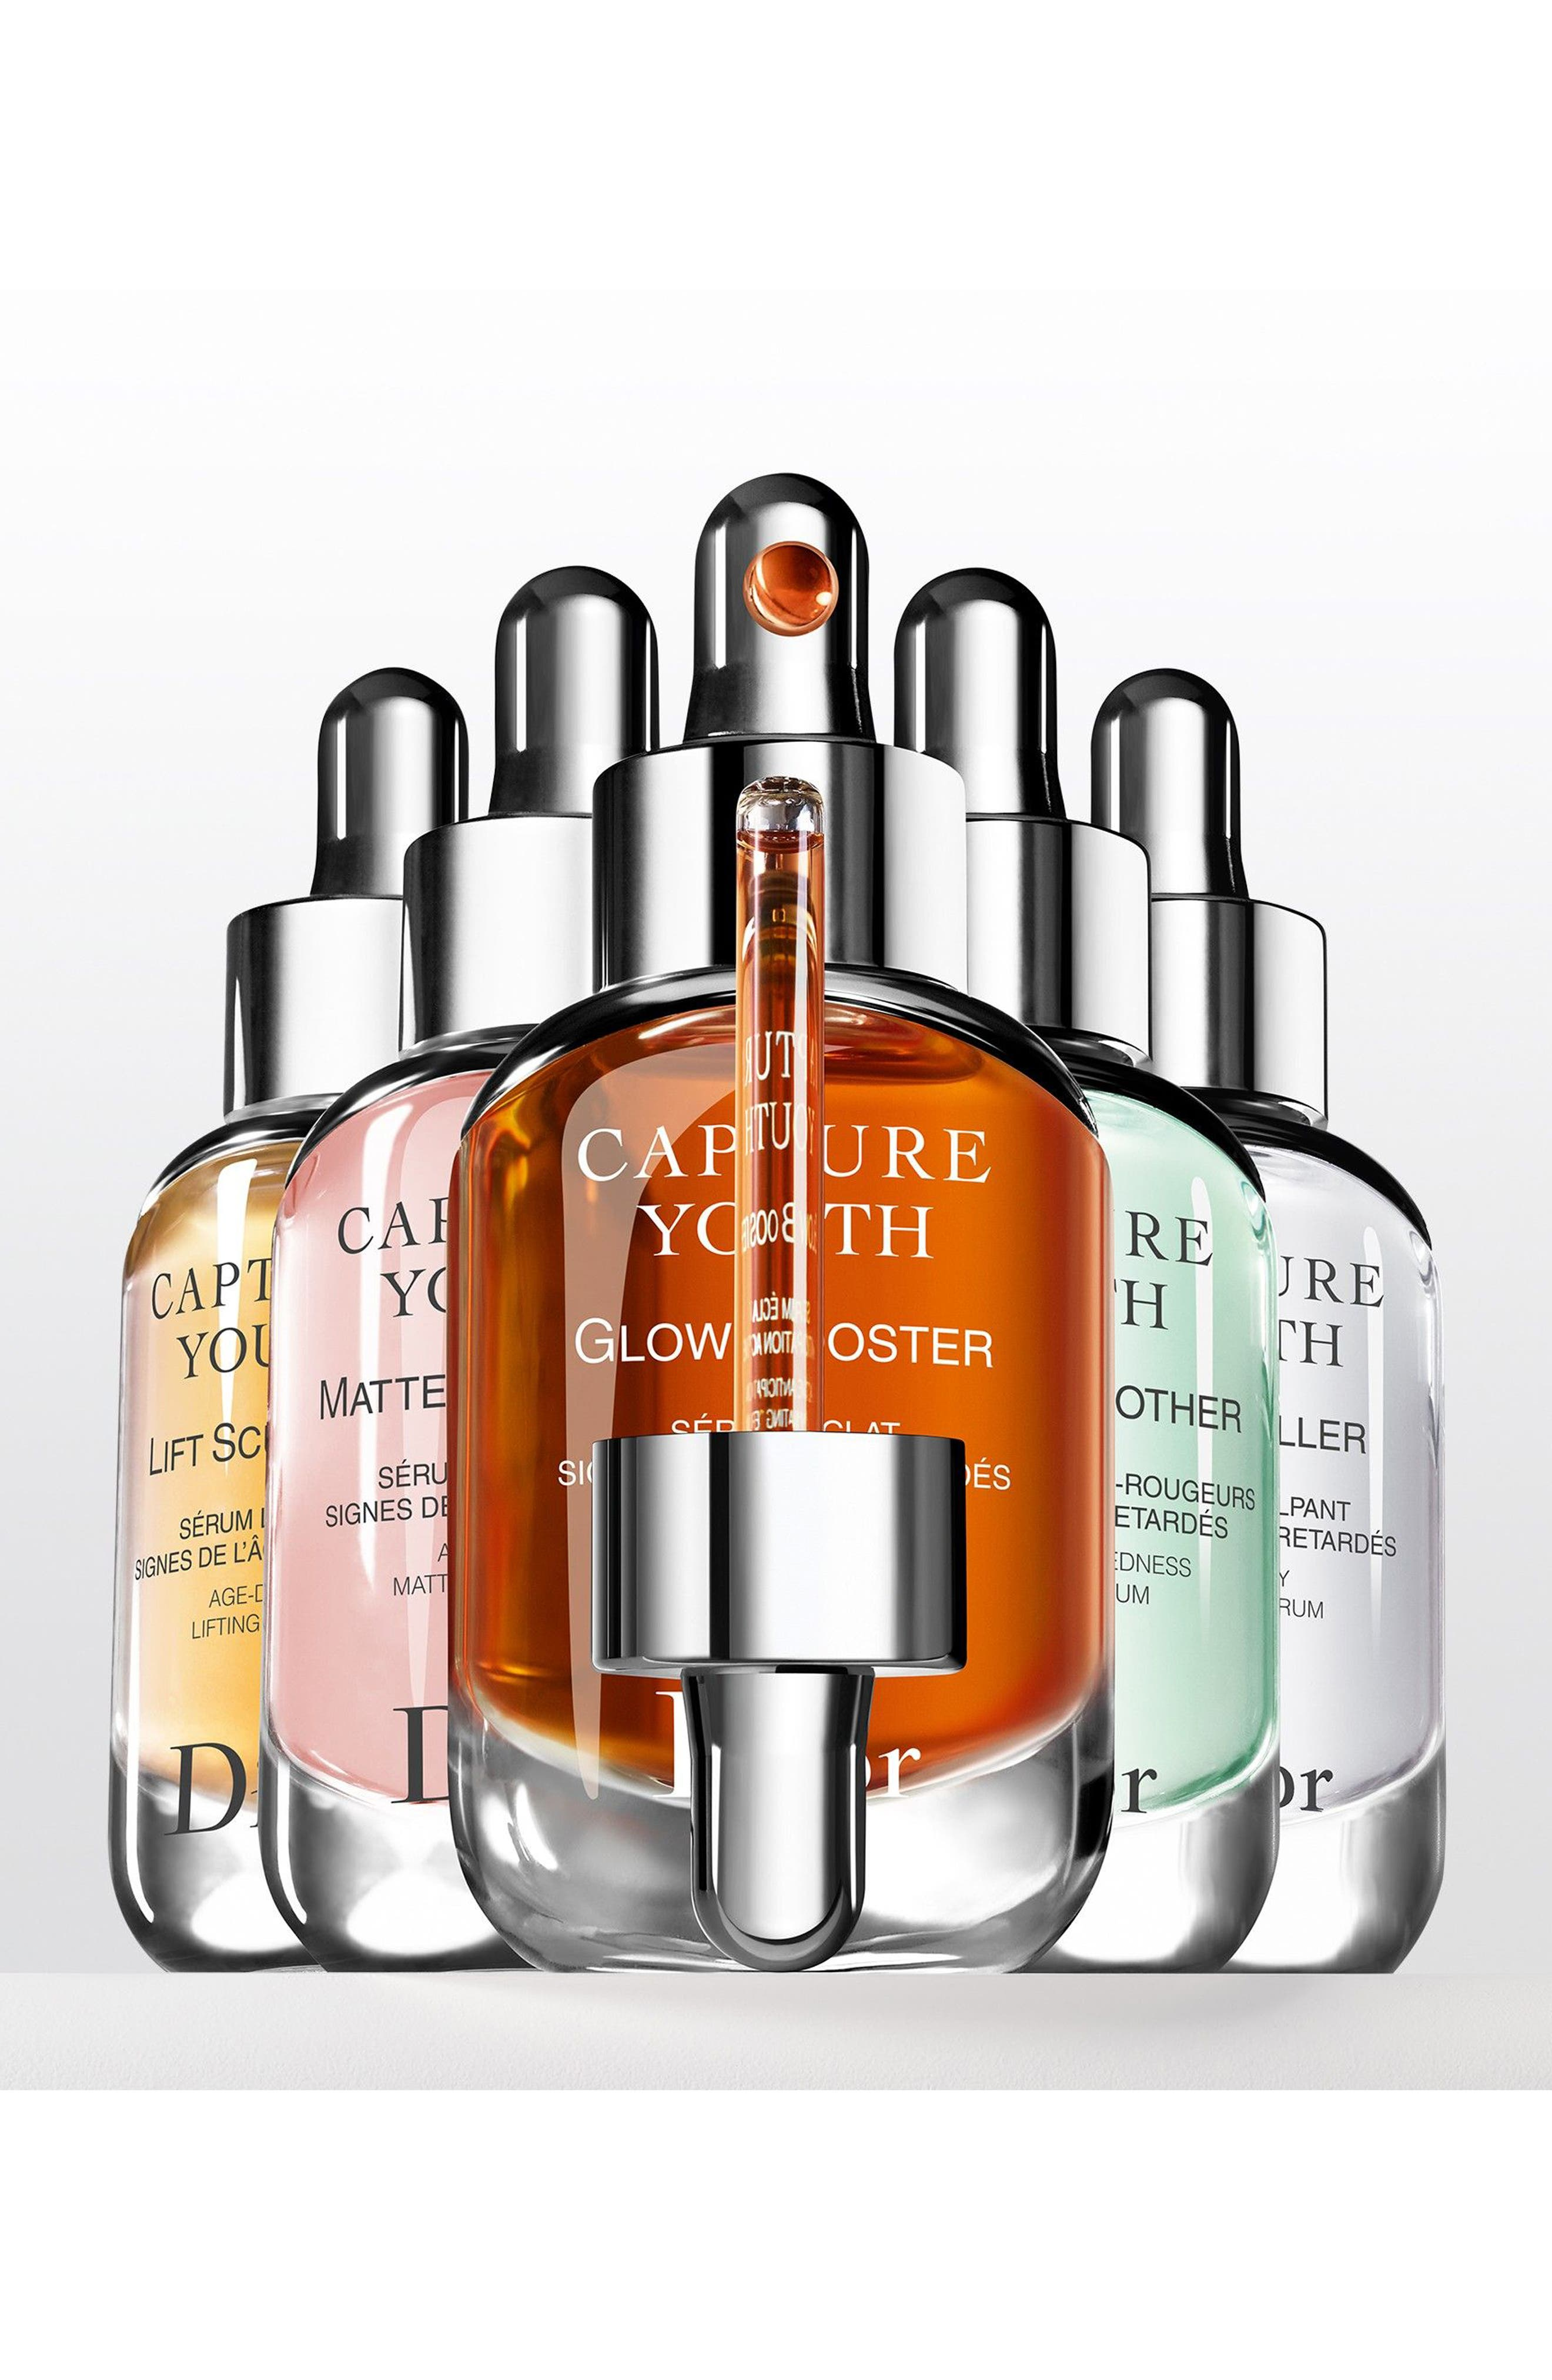 Capture Youth Lift Sculptor Age-Delay Lifting Serum,                             Alternate thumbnail 7, color,                             No Color